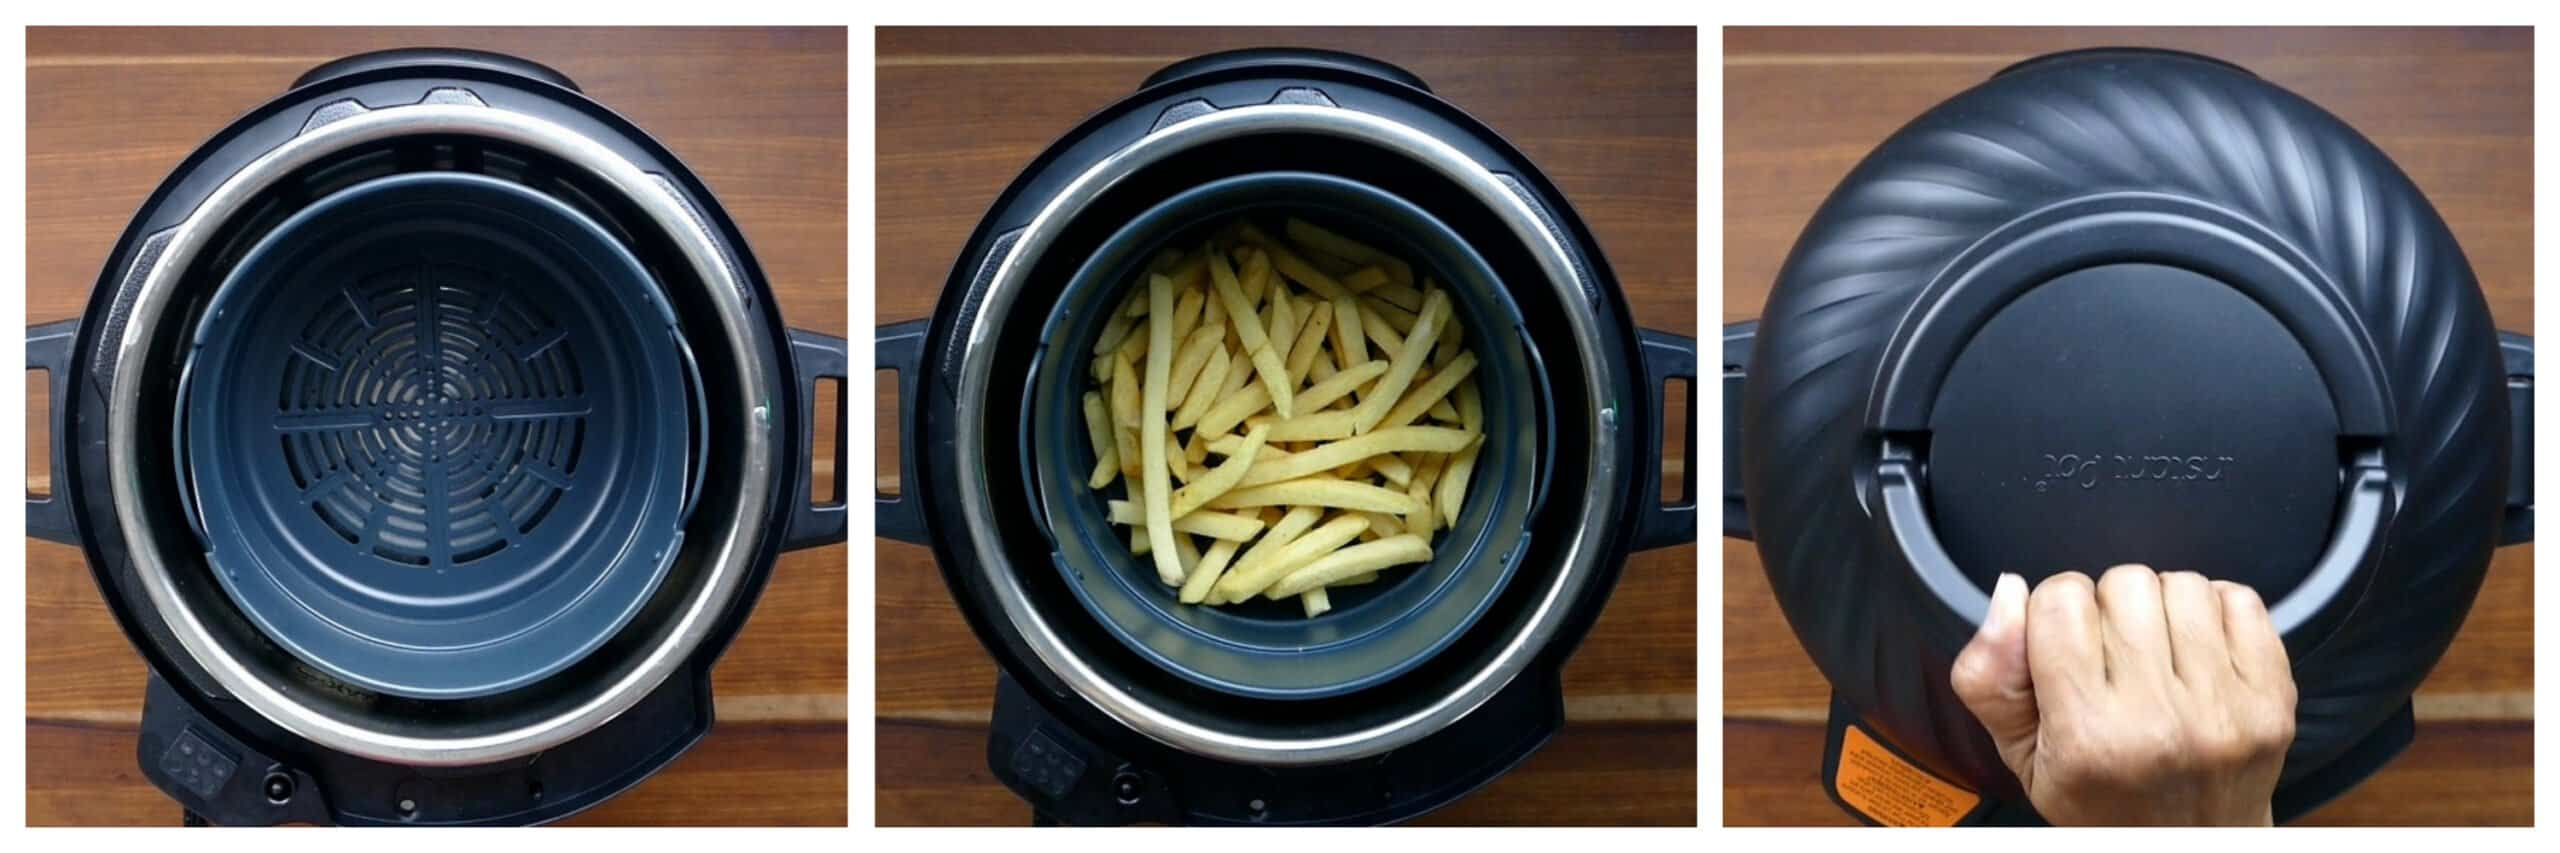 Instant Pot Air Fryer French Fries Instructions collage - empty basket, add fries, close lid